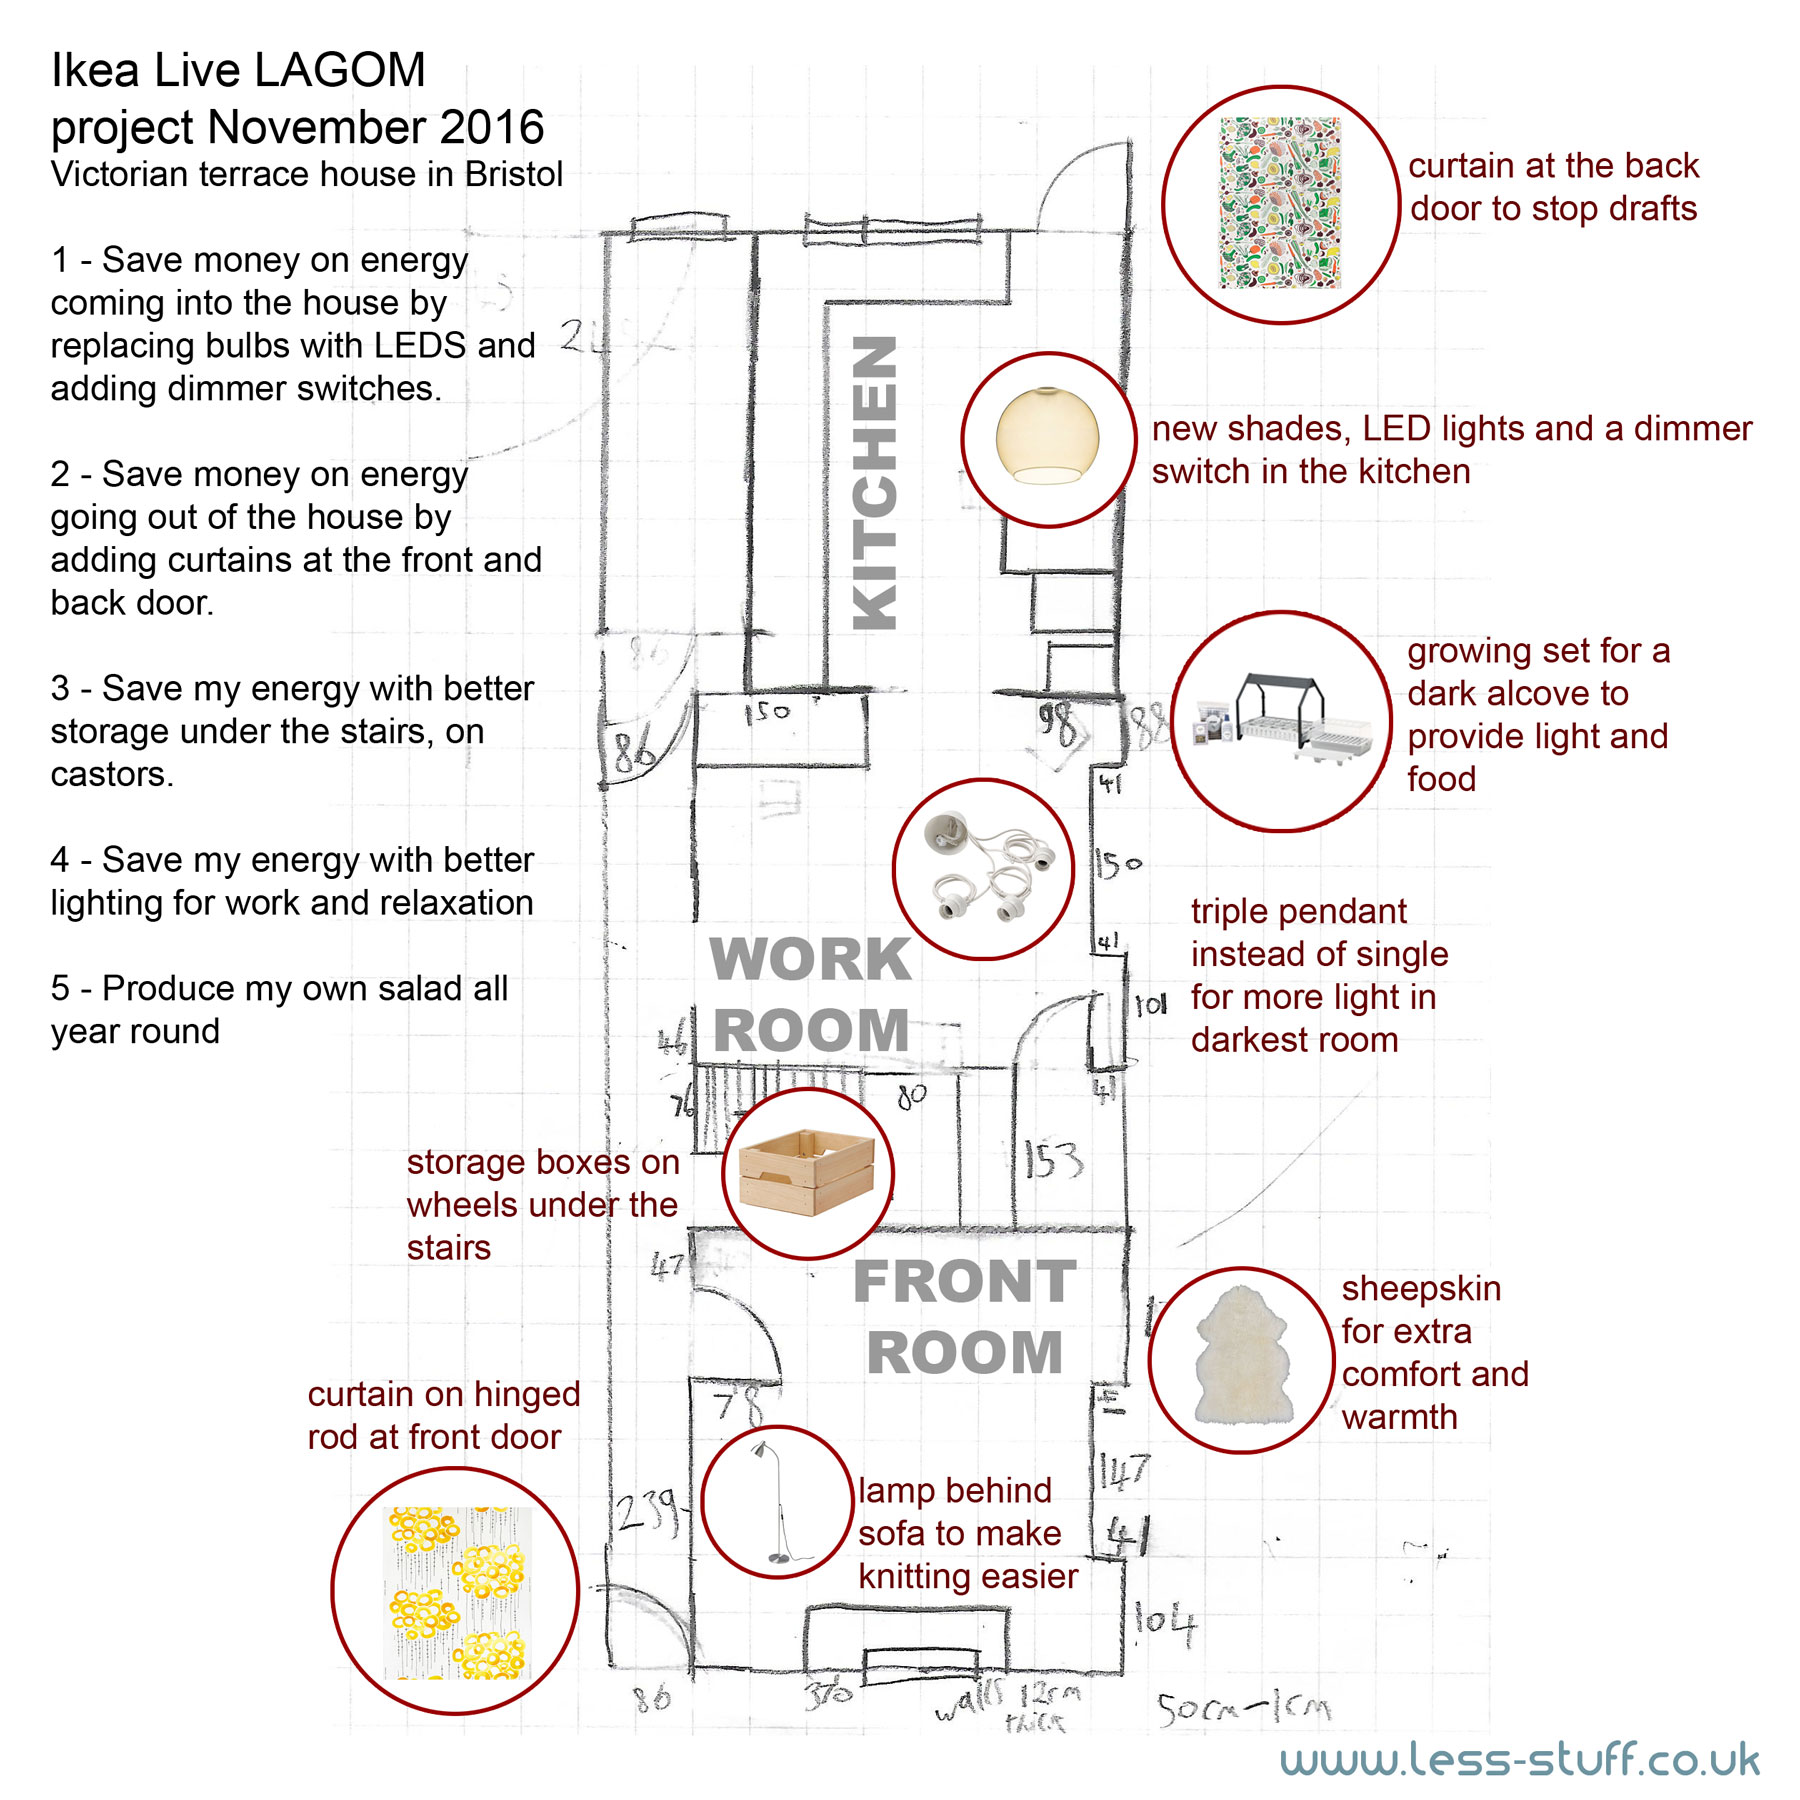 less-stuff-ikea-lagom-floor-plan